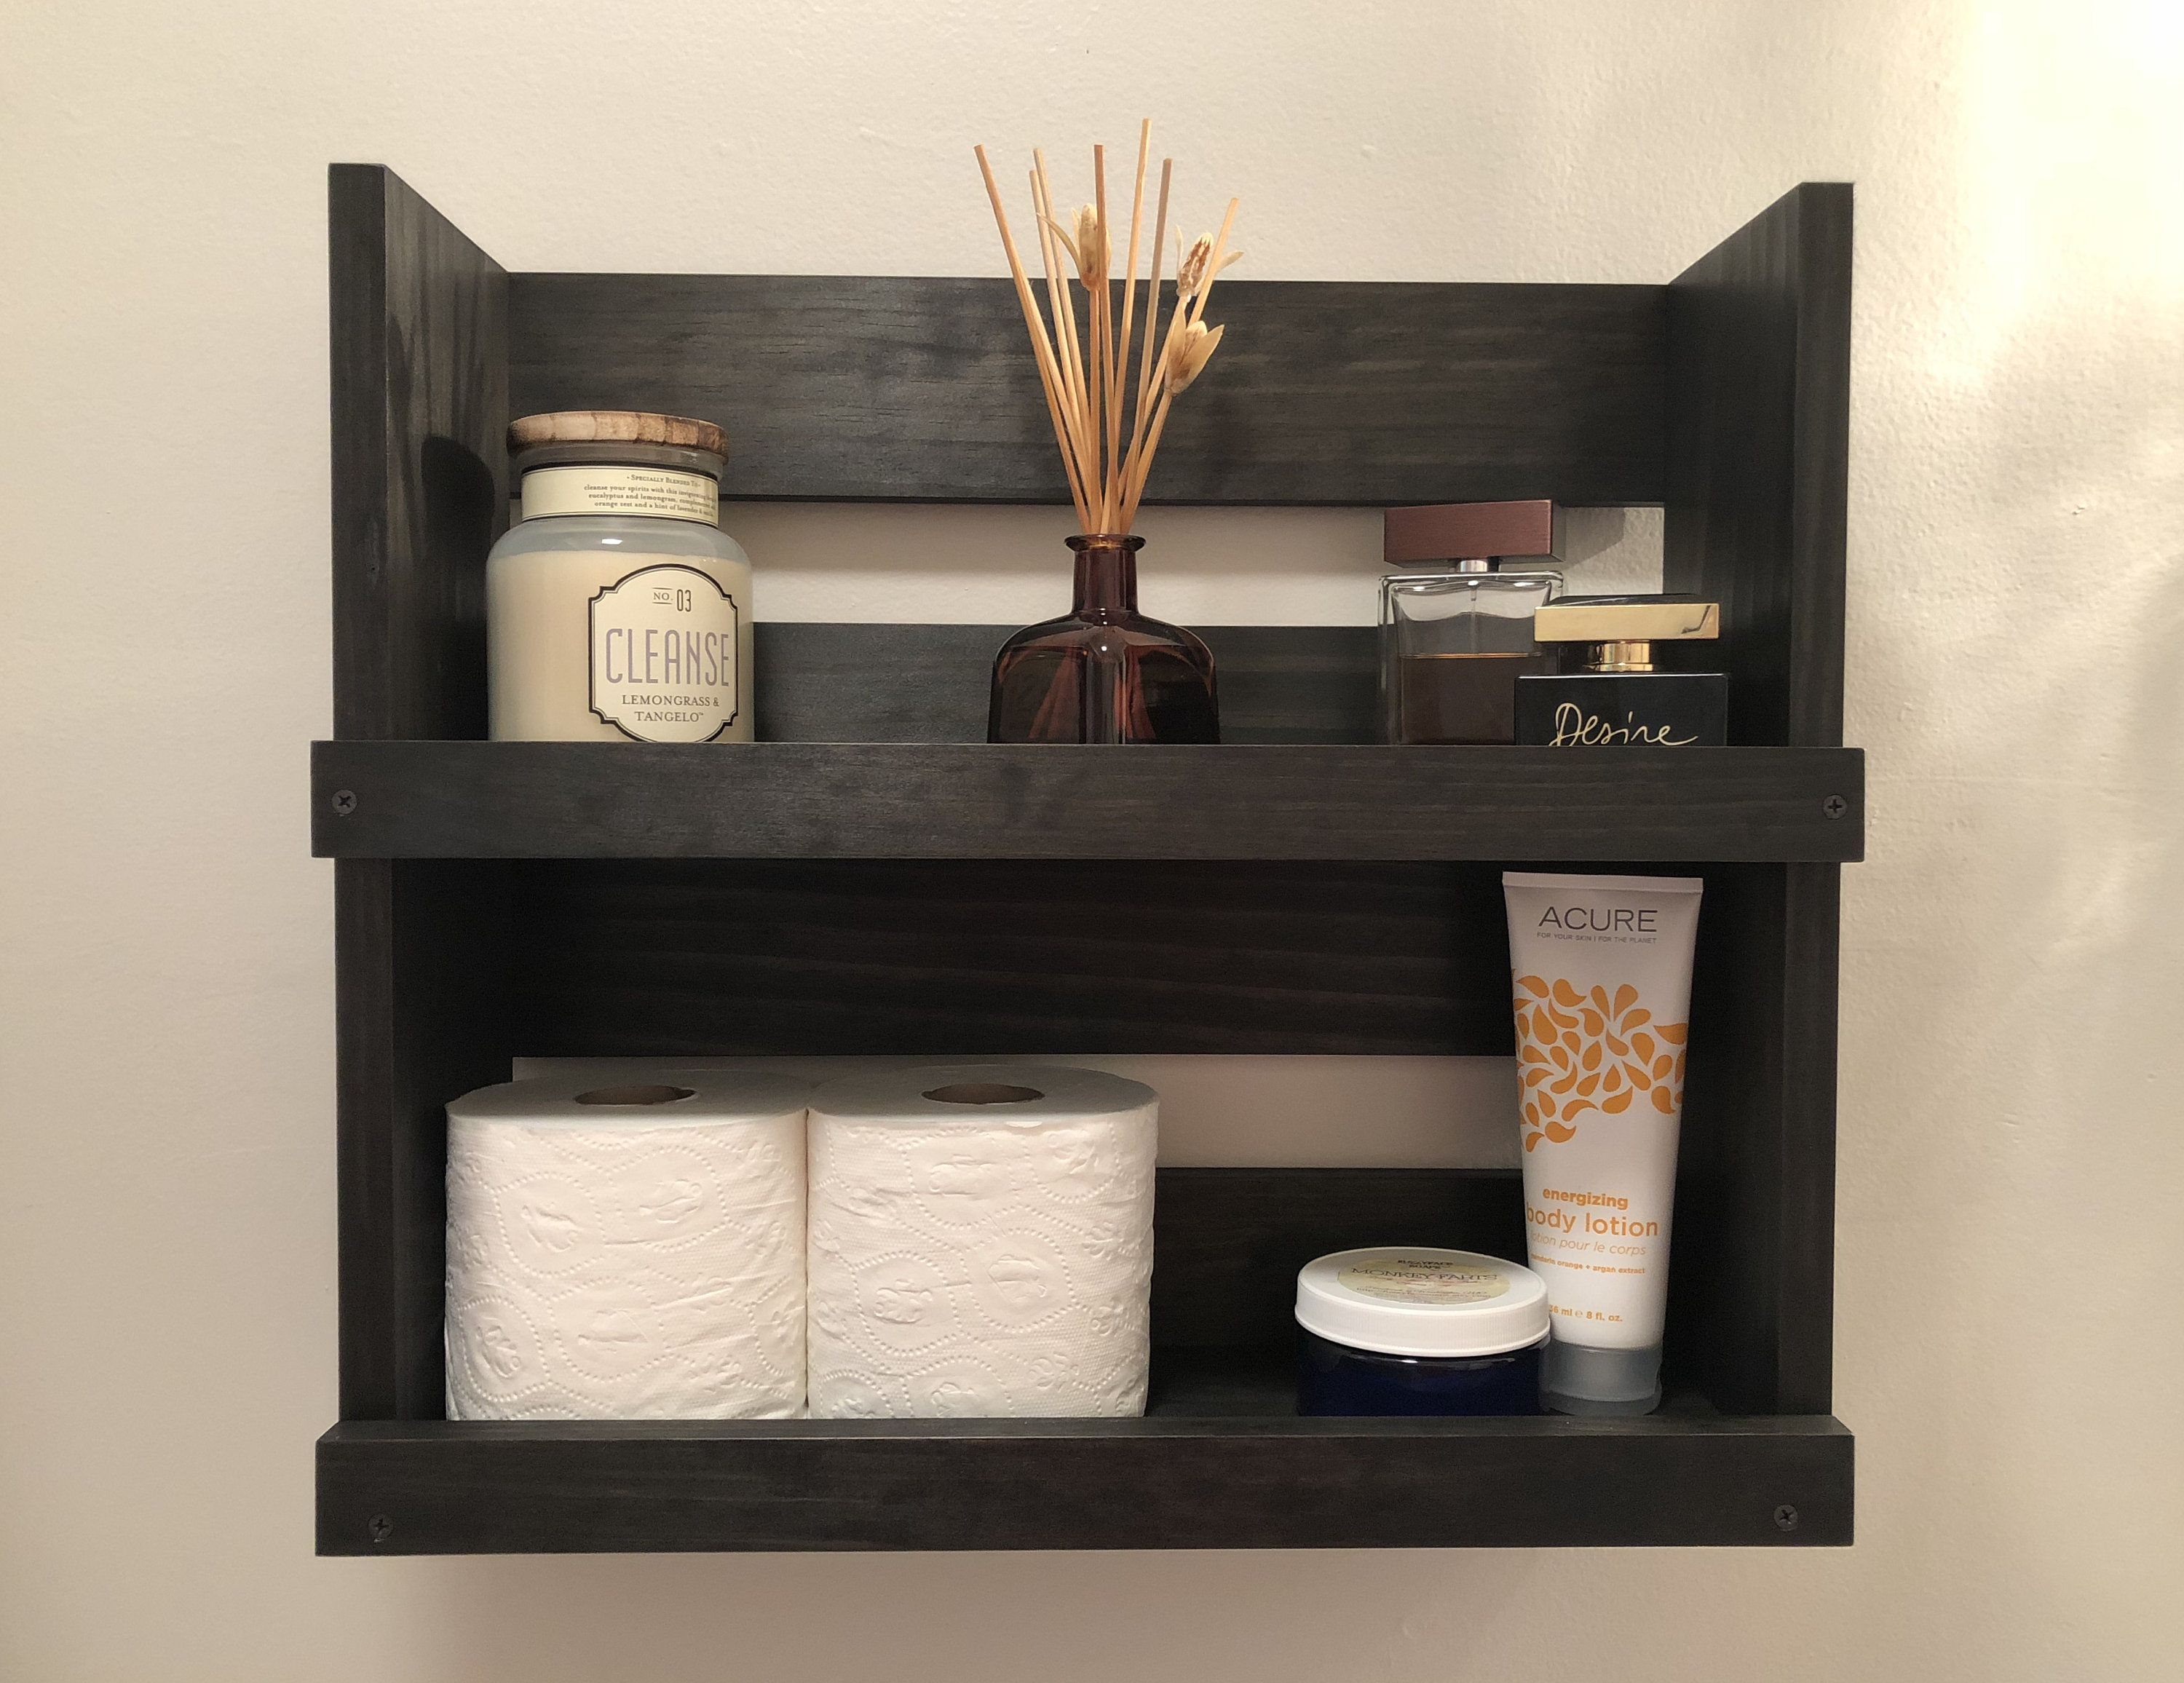 Modern Bathroom Storage Shelf Modern Wall Mounted Wall Hanging Bathroom Shelf Organizer Bathroom Organization Decor Hanging Bathroom Shelves Modern Shelving